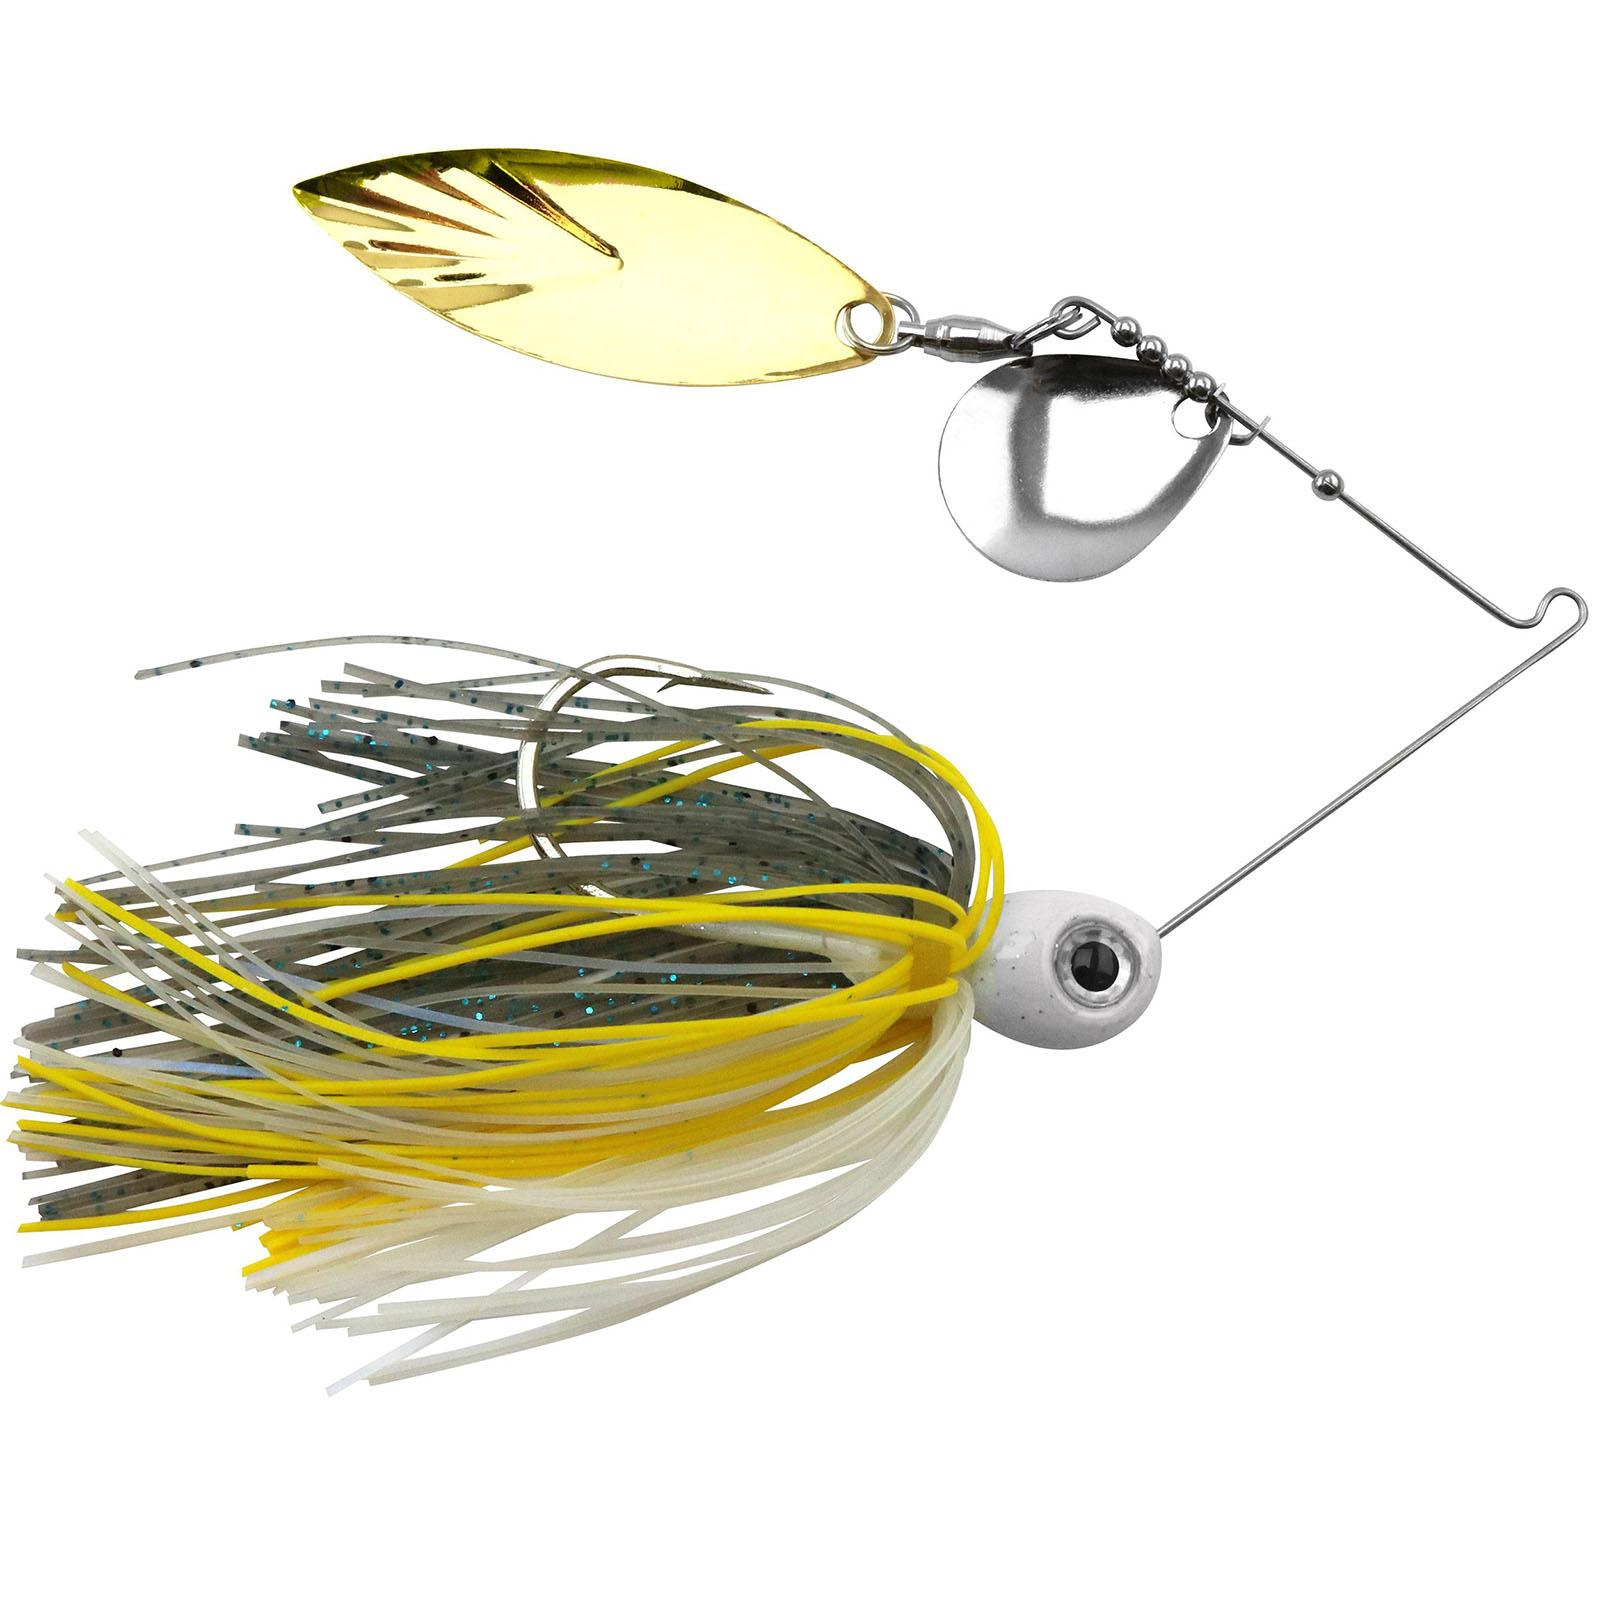 Accent River Special Colorado / Willow Spinnerbait Color Nickel/Gold Blade - Sizzling Shad Skirt Weight 1/4 oz thumbnail